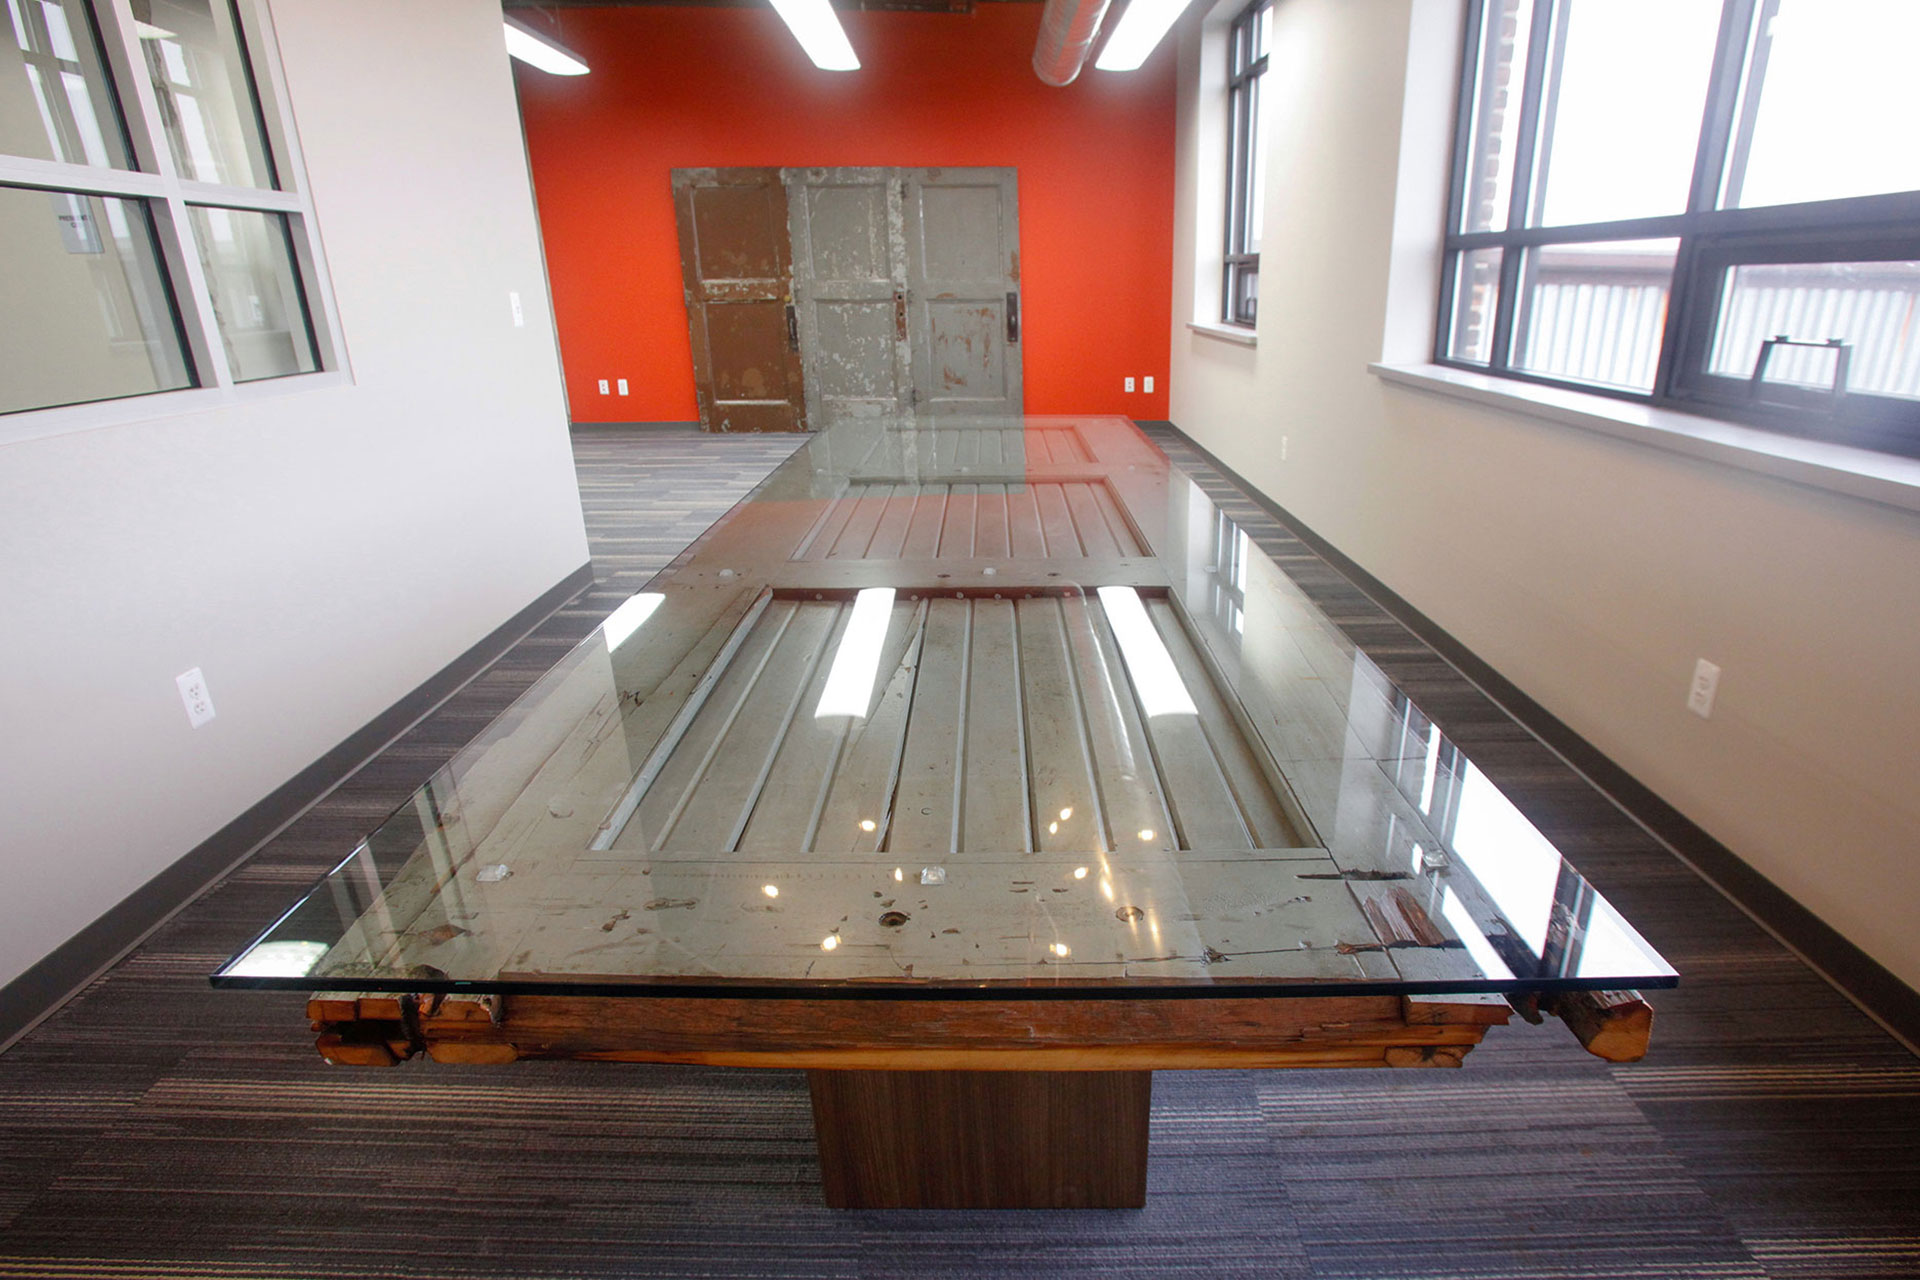 Reclaimed wood door re-purposed as a custom conference table with plastic laminate support bases and glass top.